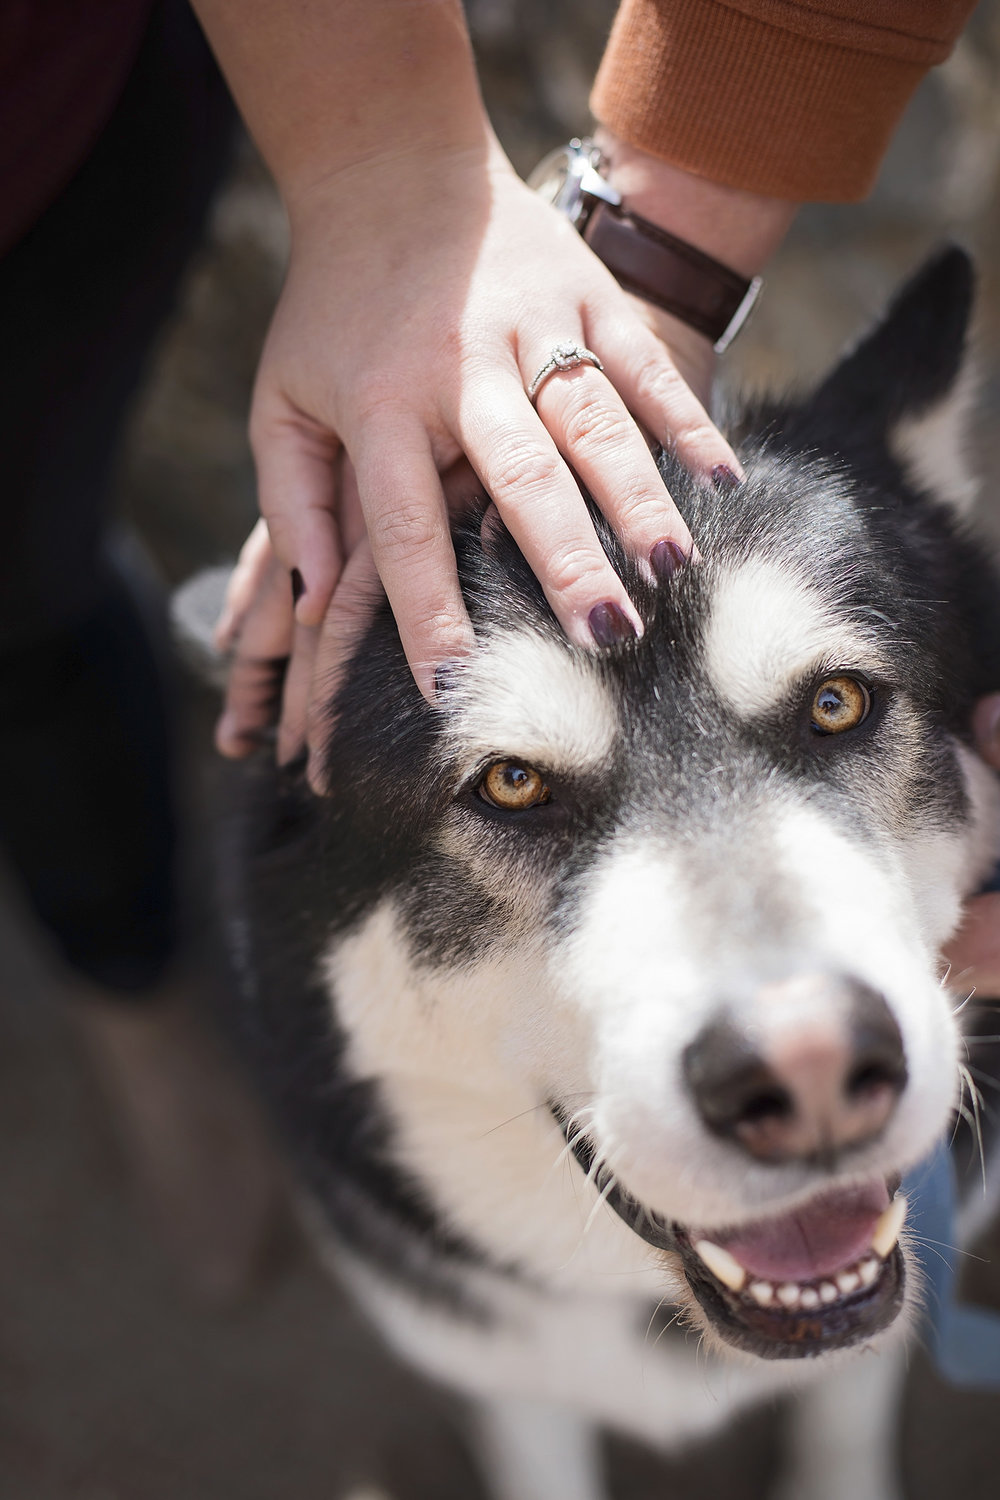 Engagement ring and couple's hands resting on their husky's head